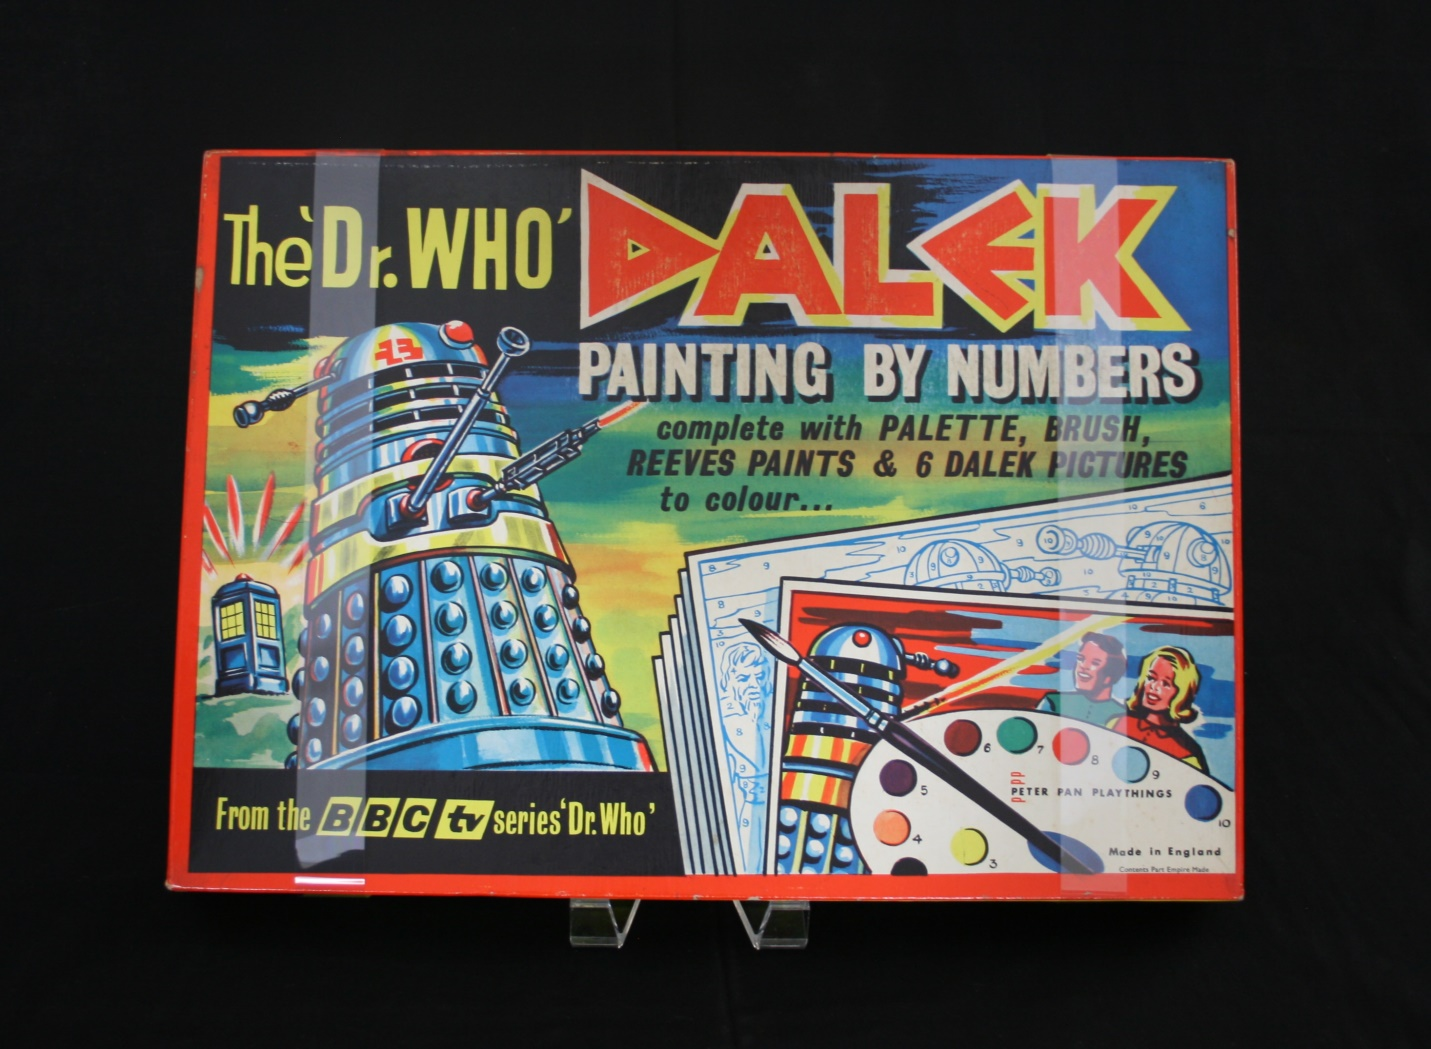 Peter Pan Playthings Ltd., The 'Dr. Who' Dalek Painting by Numbers